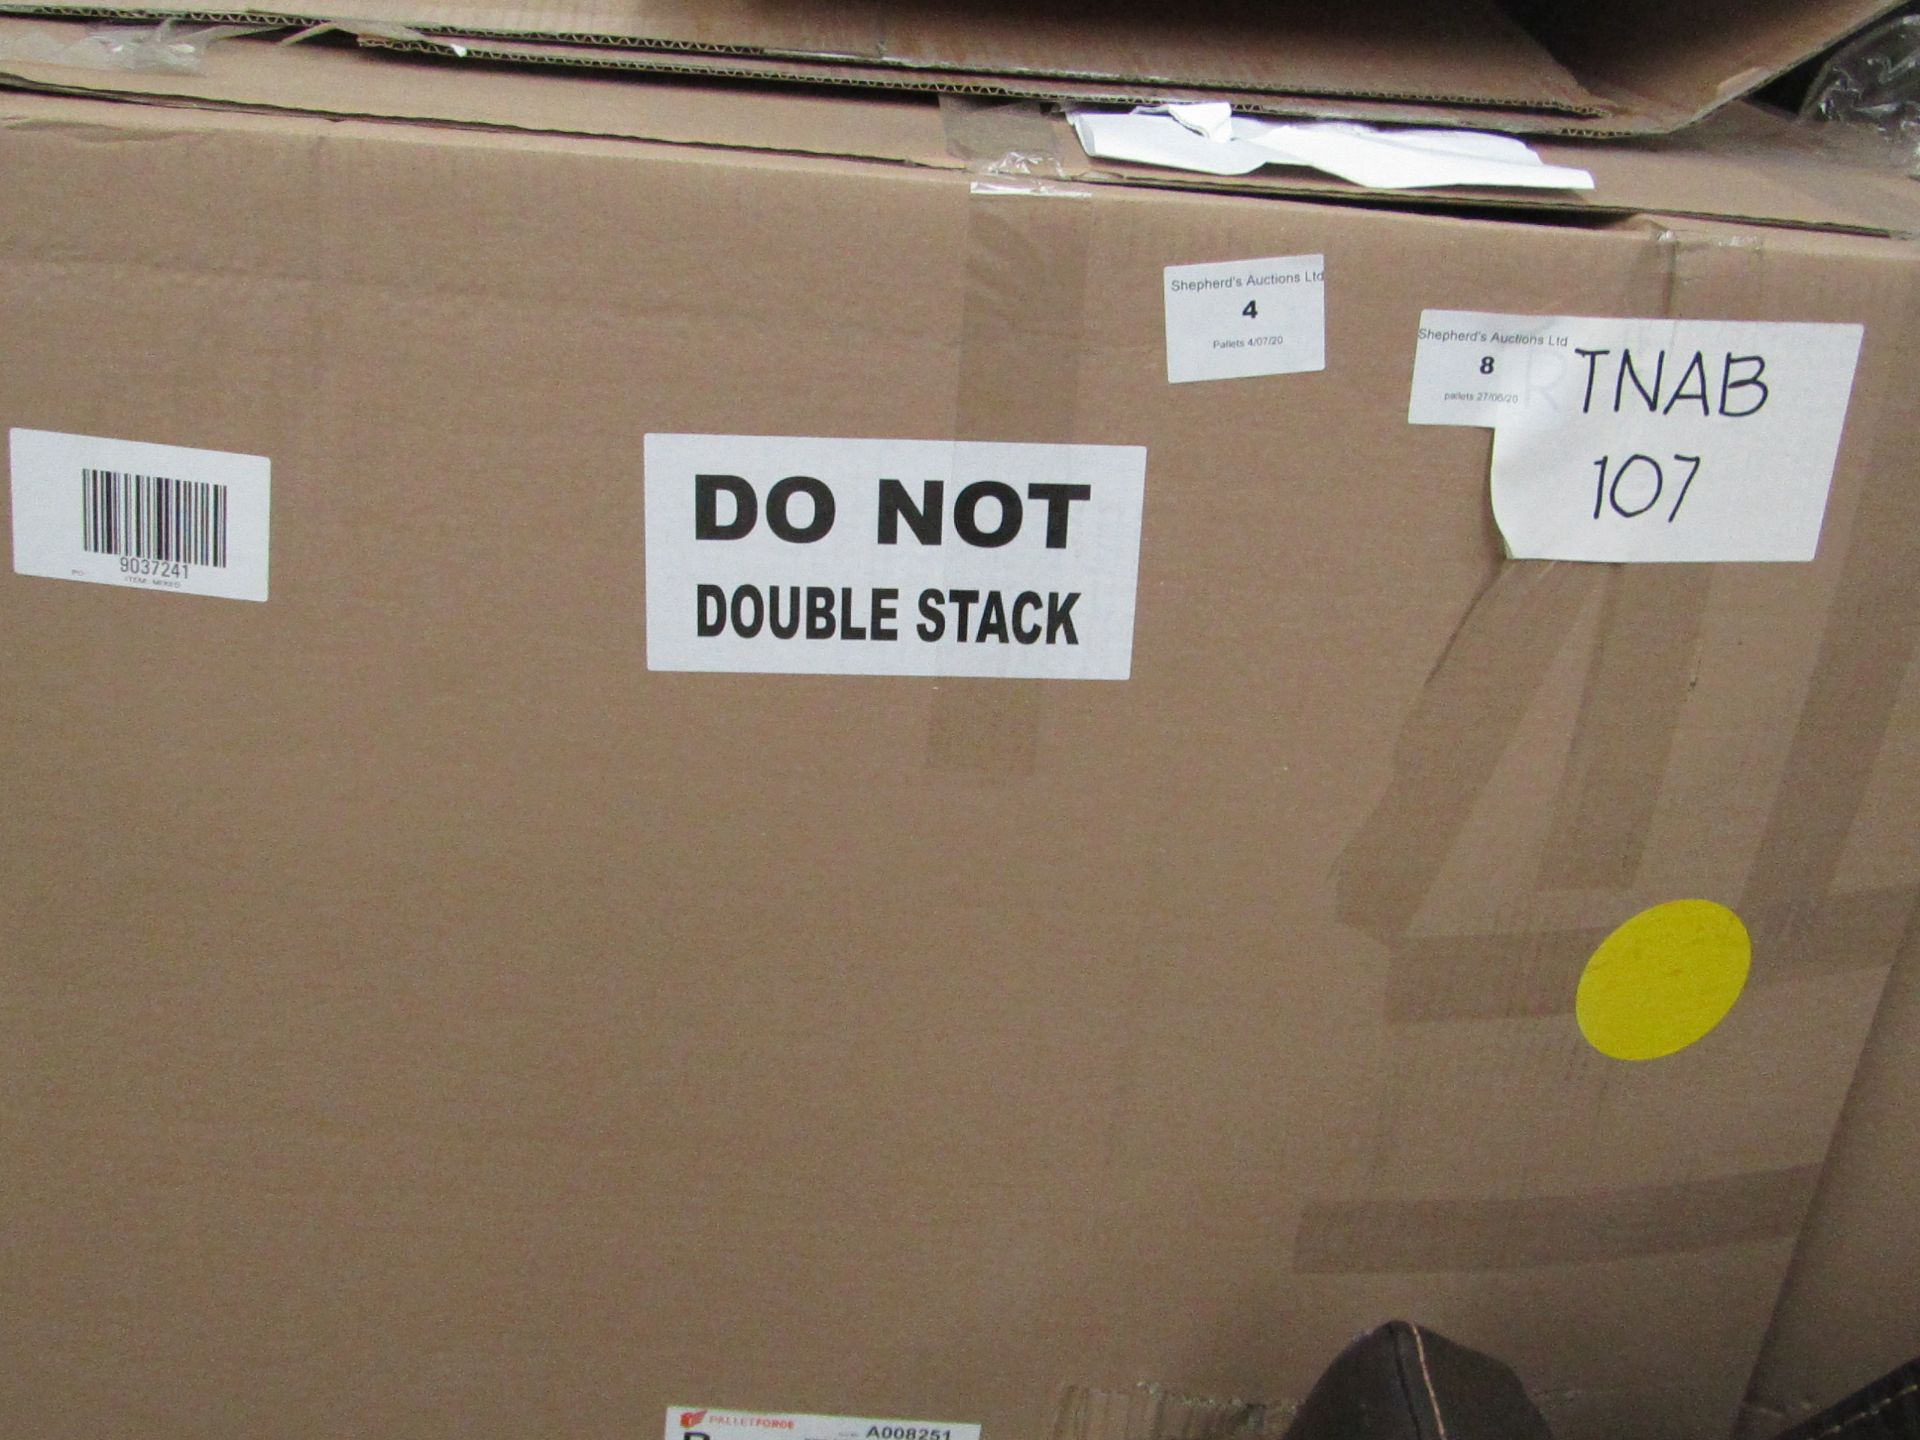 | 1x | PALLET OF APPROX 34 AIRBEDS | UNCHECKED CUSTOMER RETURNS | REF RTNAB107 | please note that